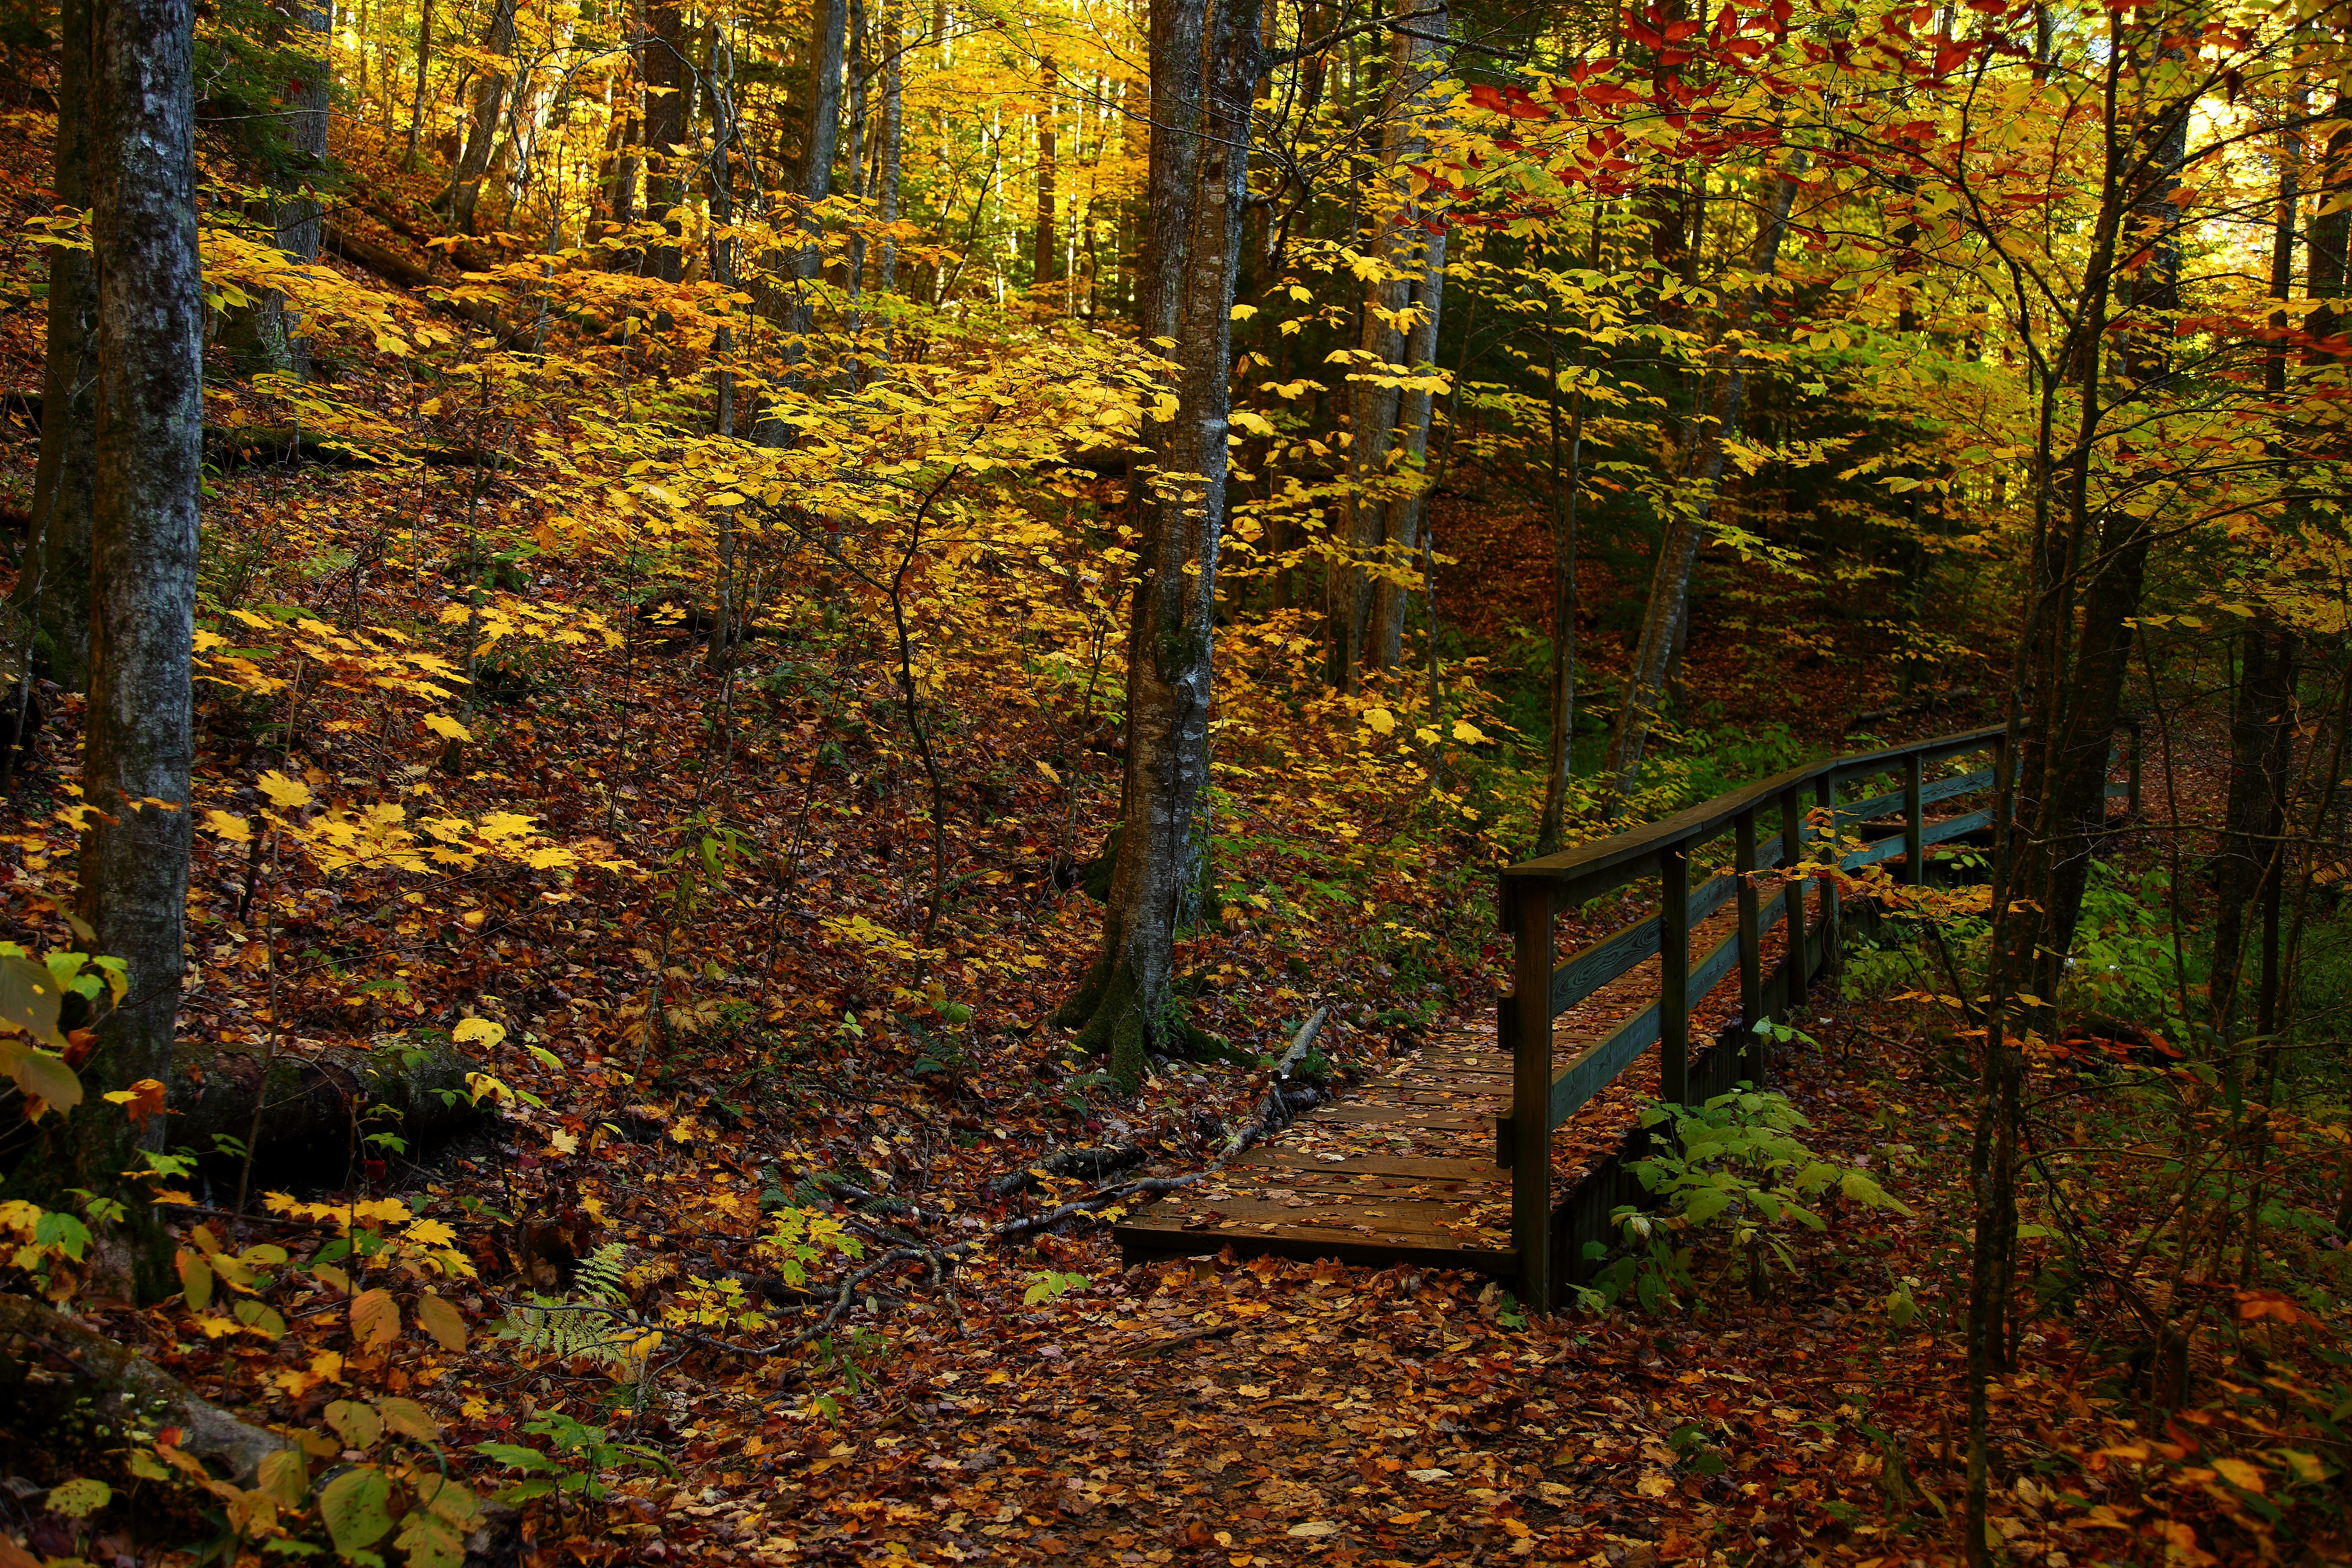 Forest Trail Wallpaper Fall Foliage Forest Foot Trail